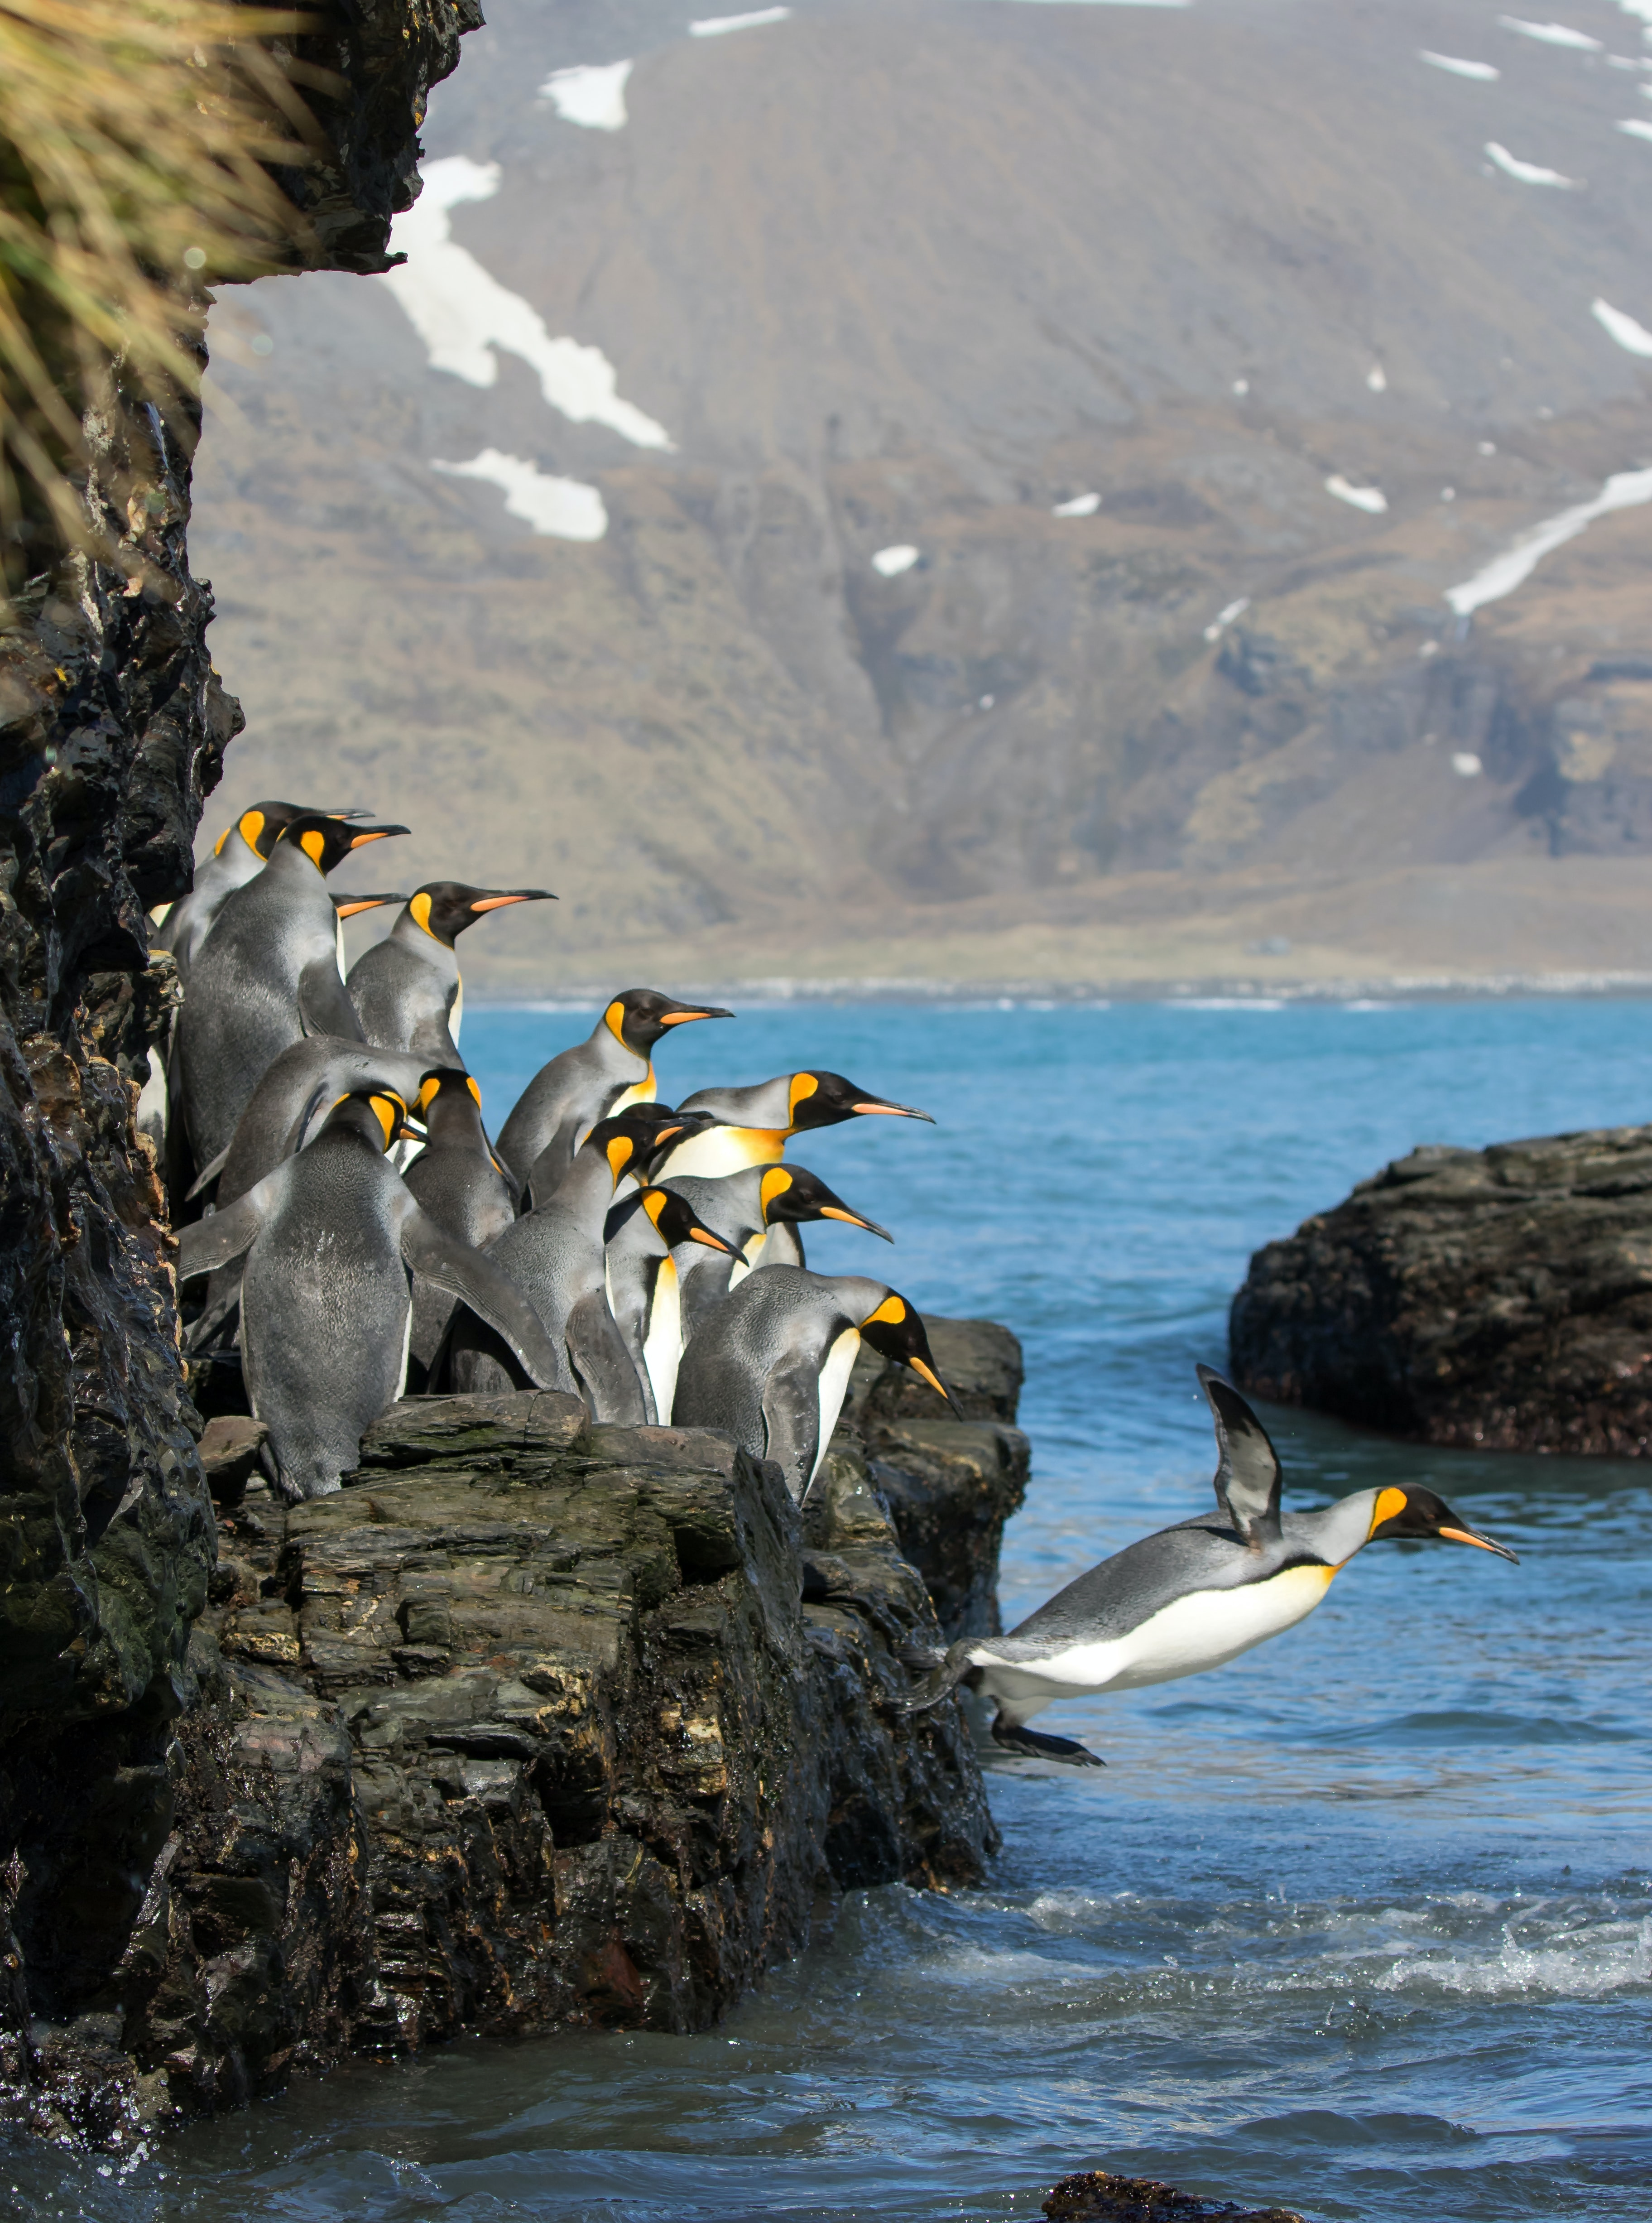 penguins standing on rock formation